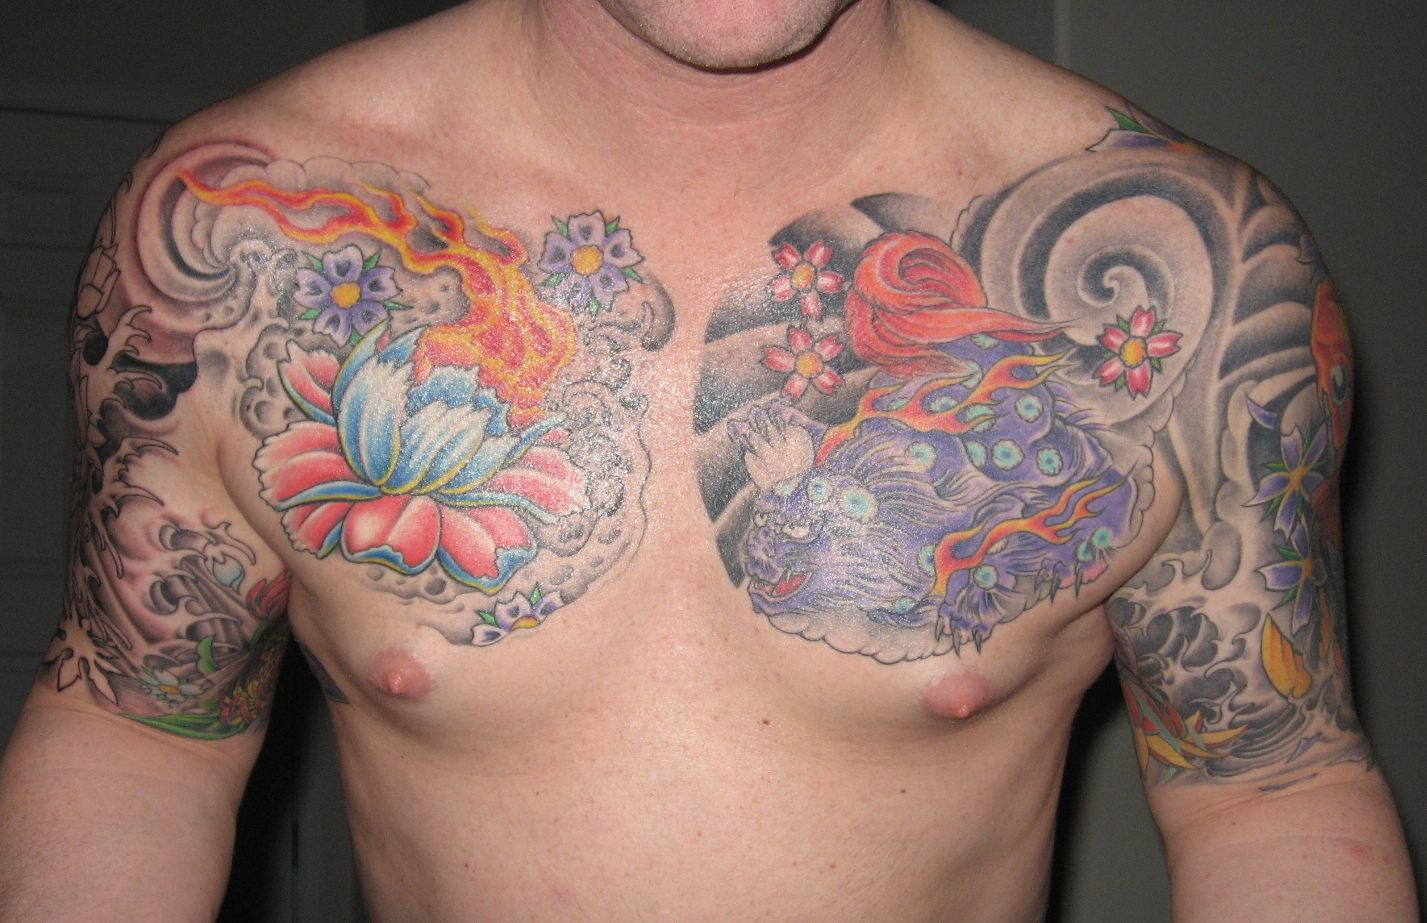 Men Chest And Upper Sleeve With Nice Flowers Tattoo: Tattoos For Men On Arm Sleeves